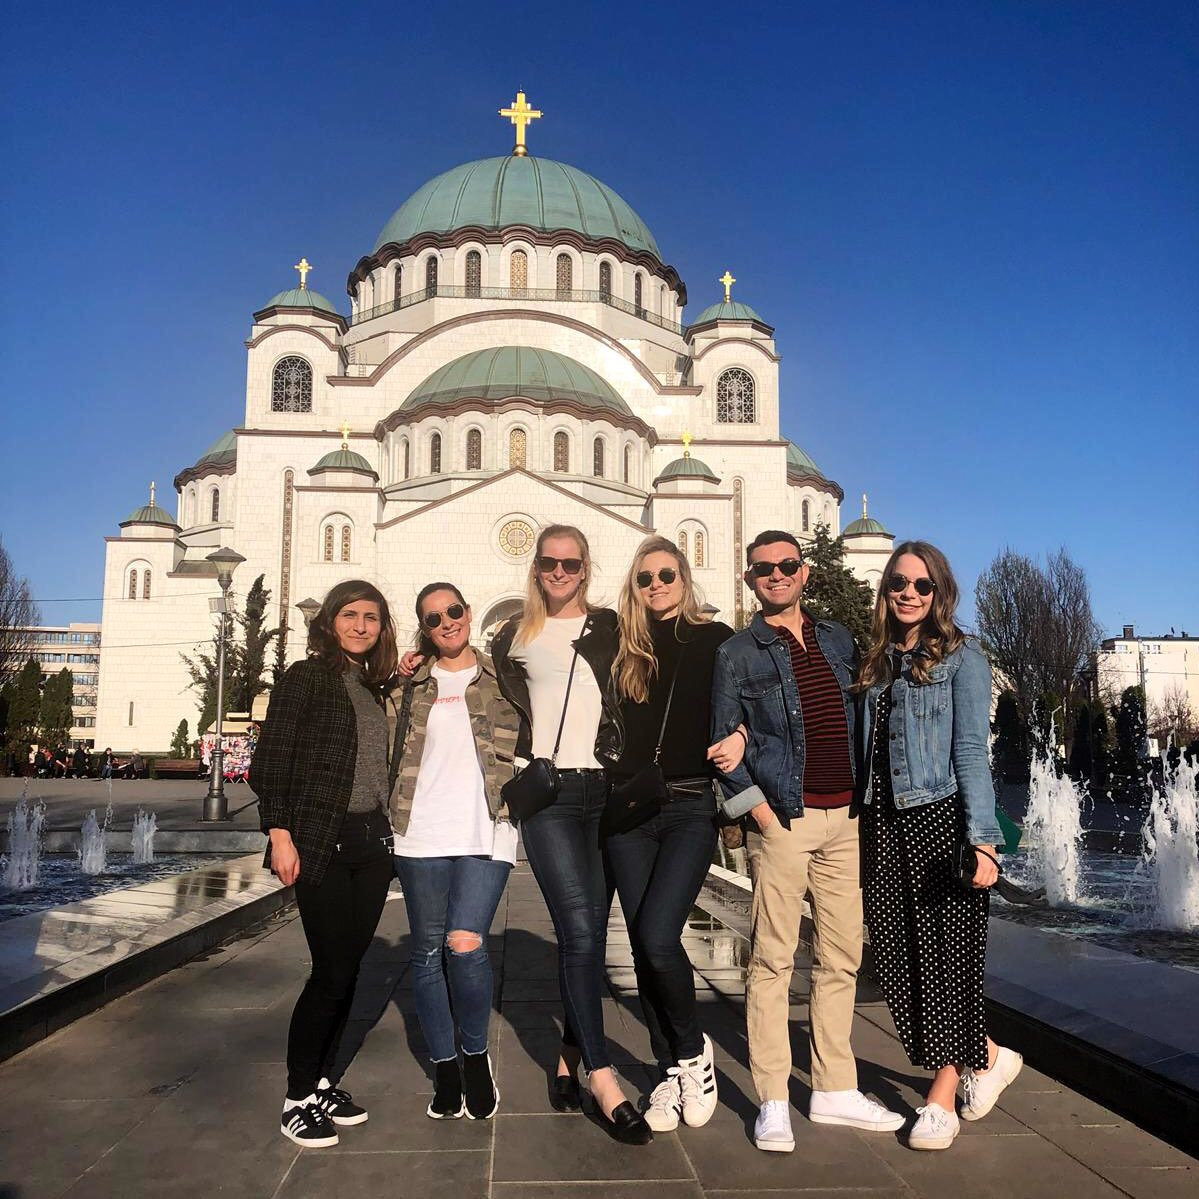 My best friends and I in front of the Church of Saint Sava in Belgrade